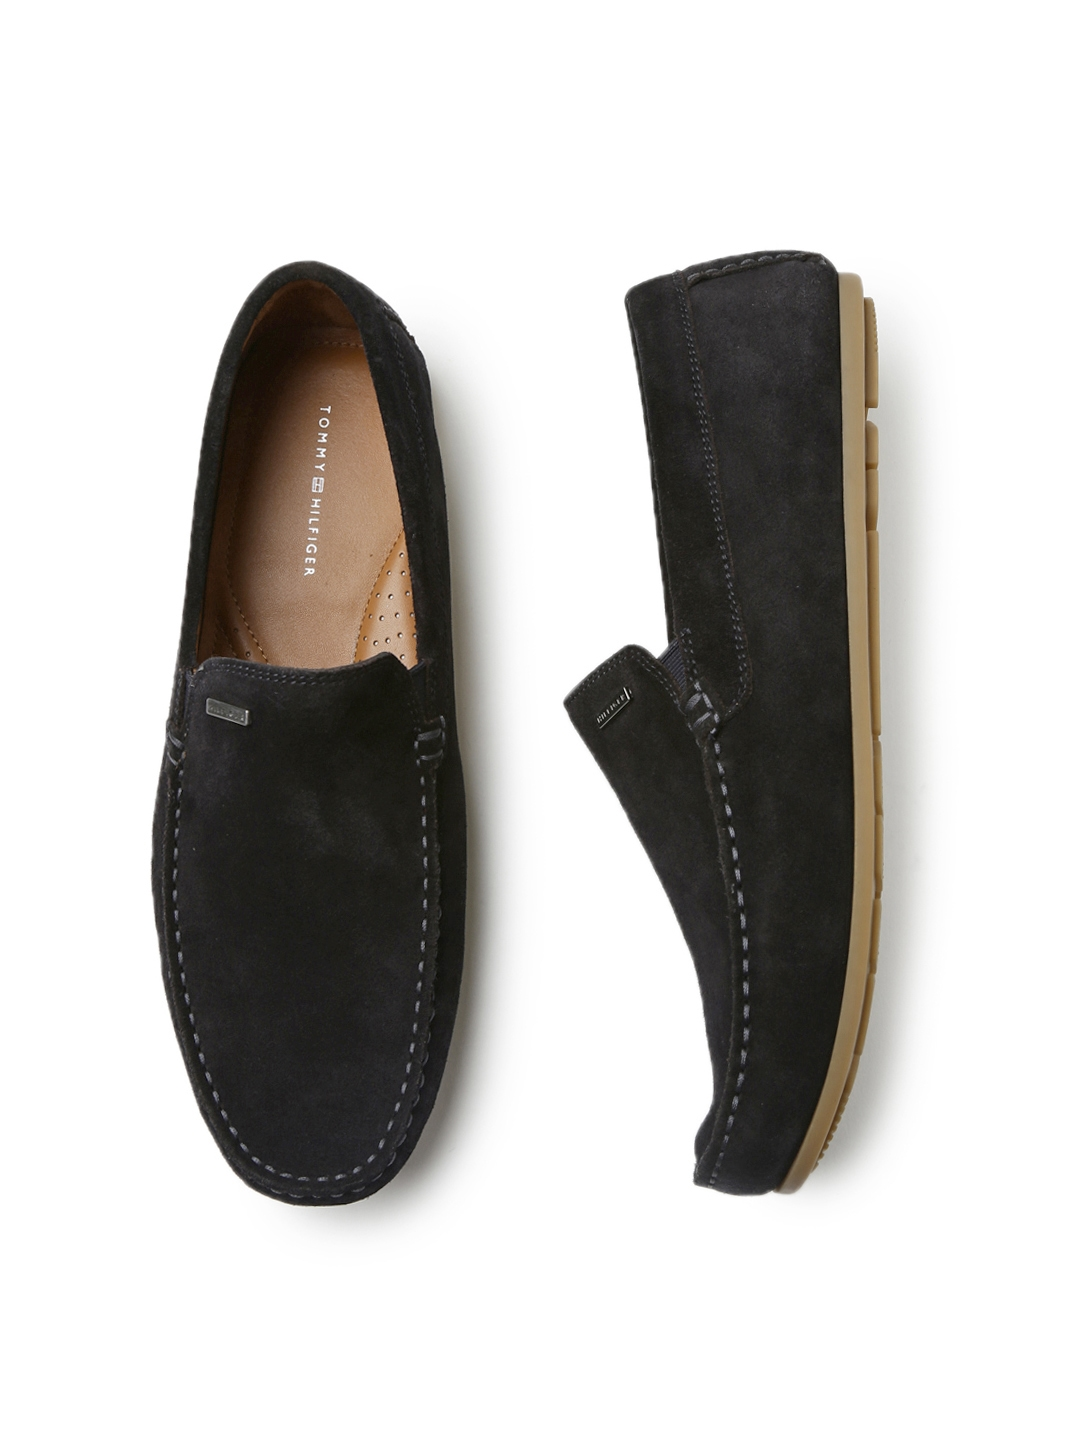 5a6195b57 Buy Tommy Hilfiger Men Black Suede Loafers - Casual Shoes for Men ...